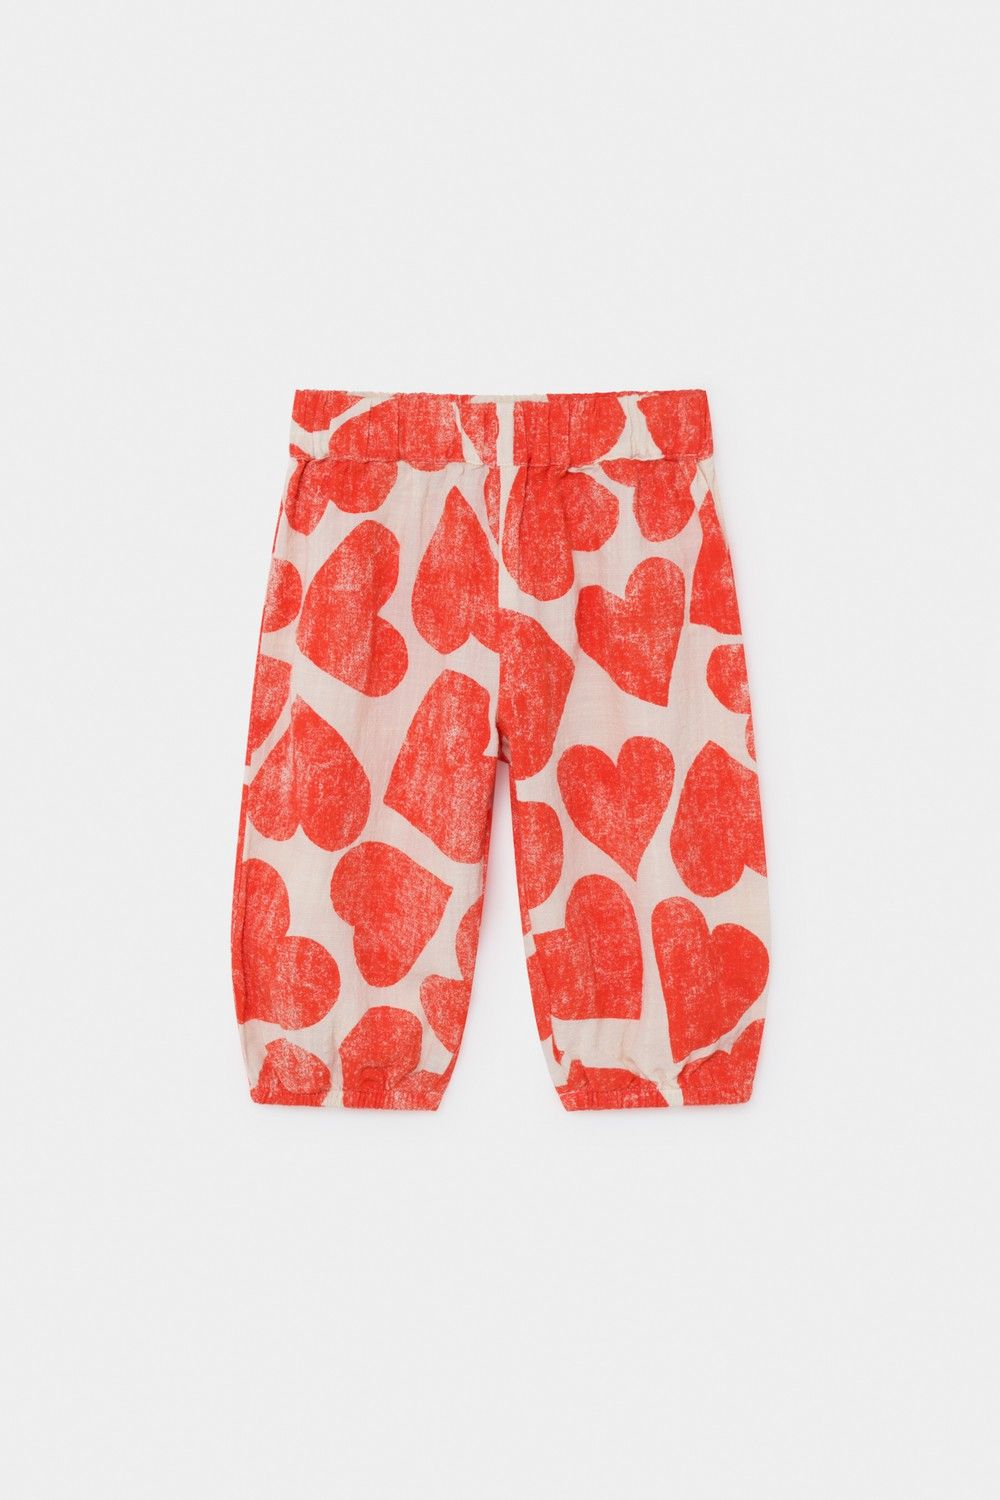 Bobo Choses - All Over Hearts Baggy Trousers - Turtledove